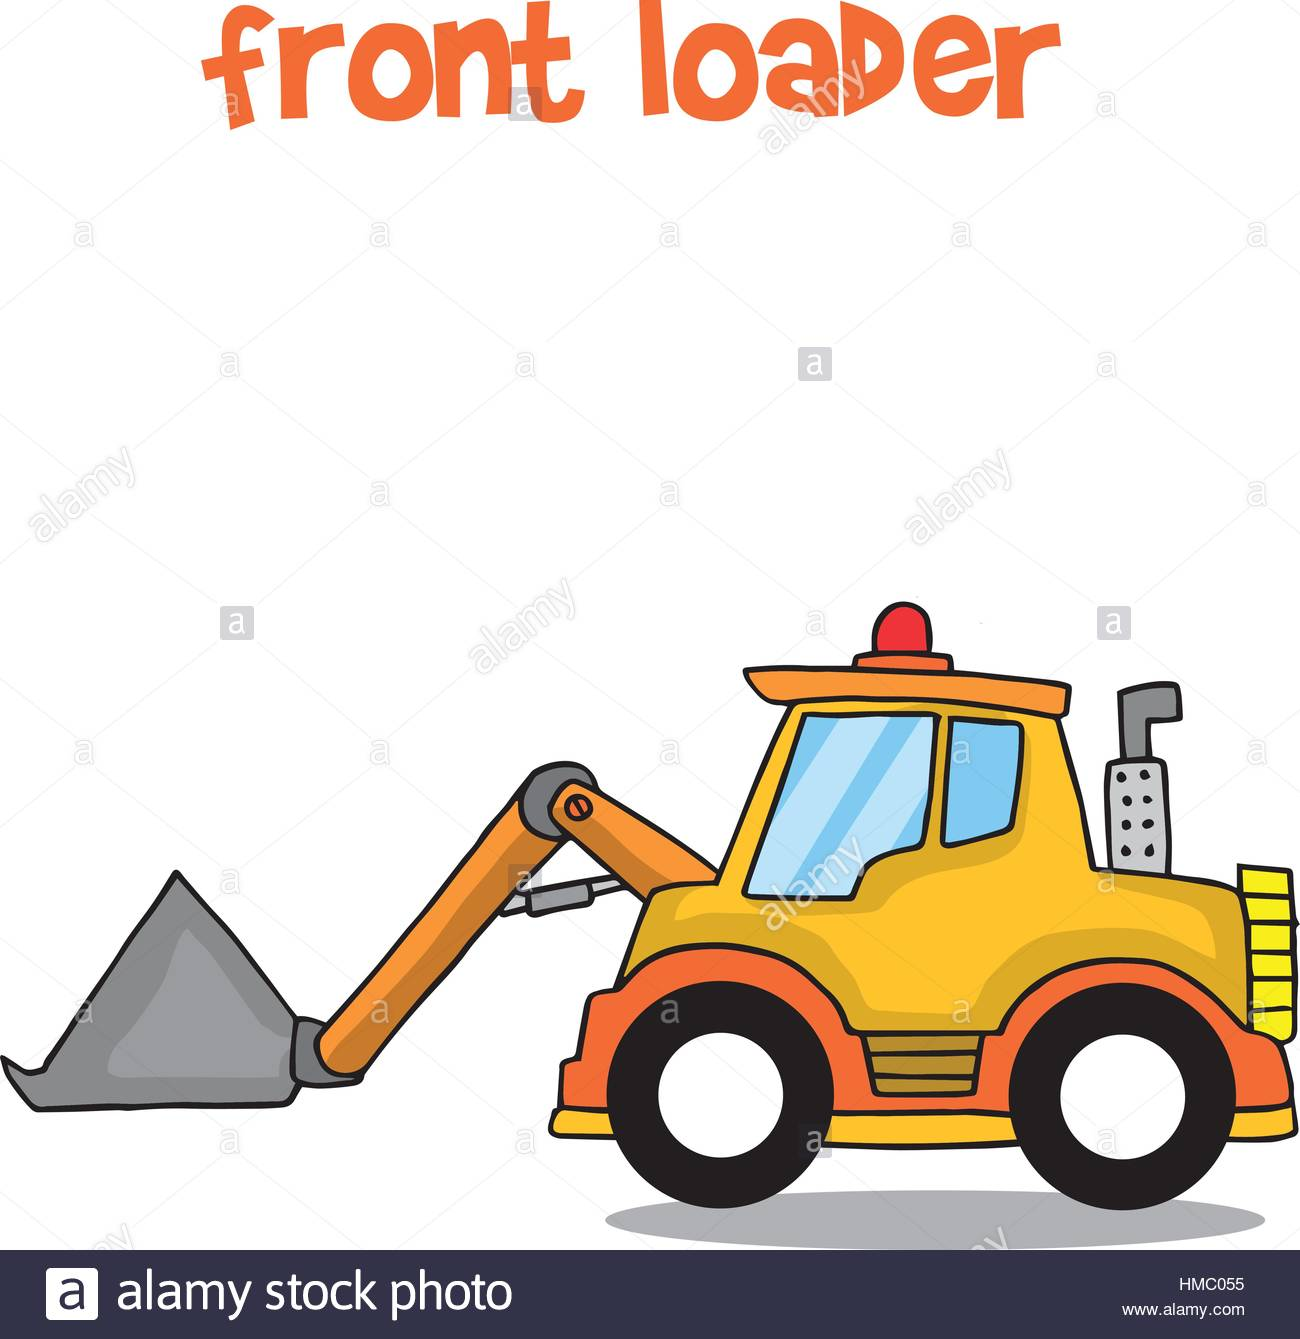 1300x1339 Front Loader Stock Vector Images